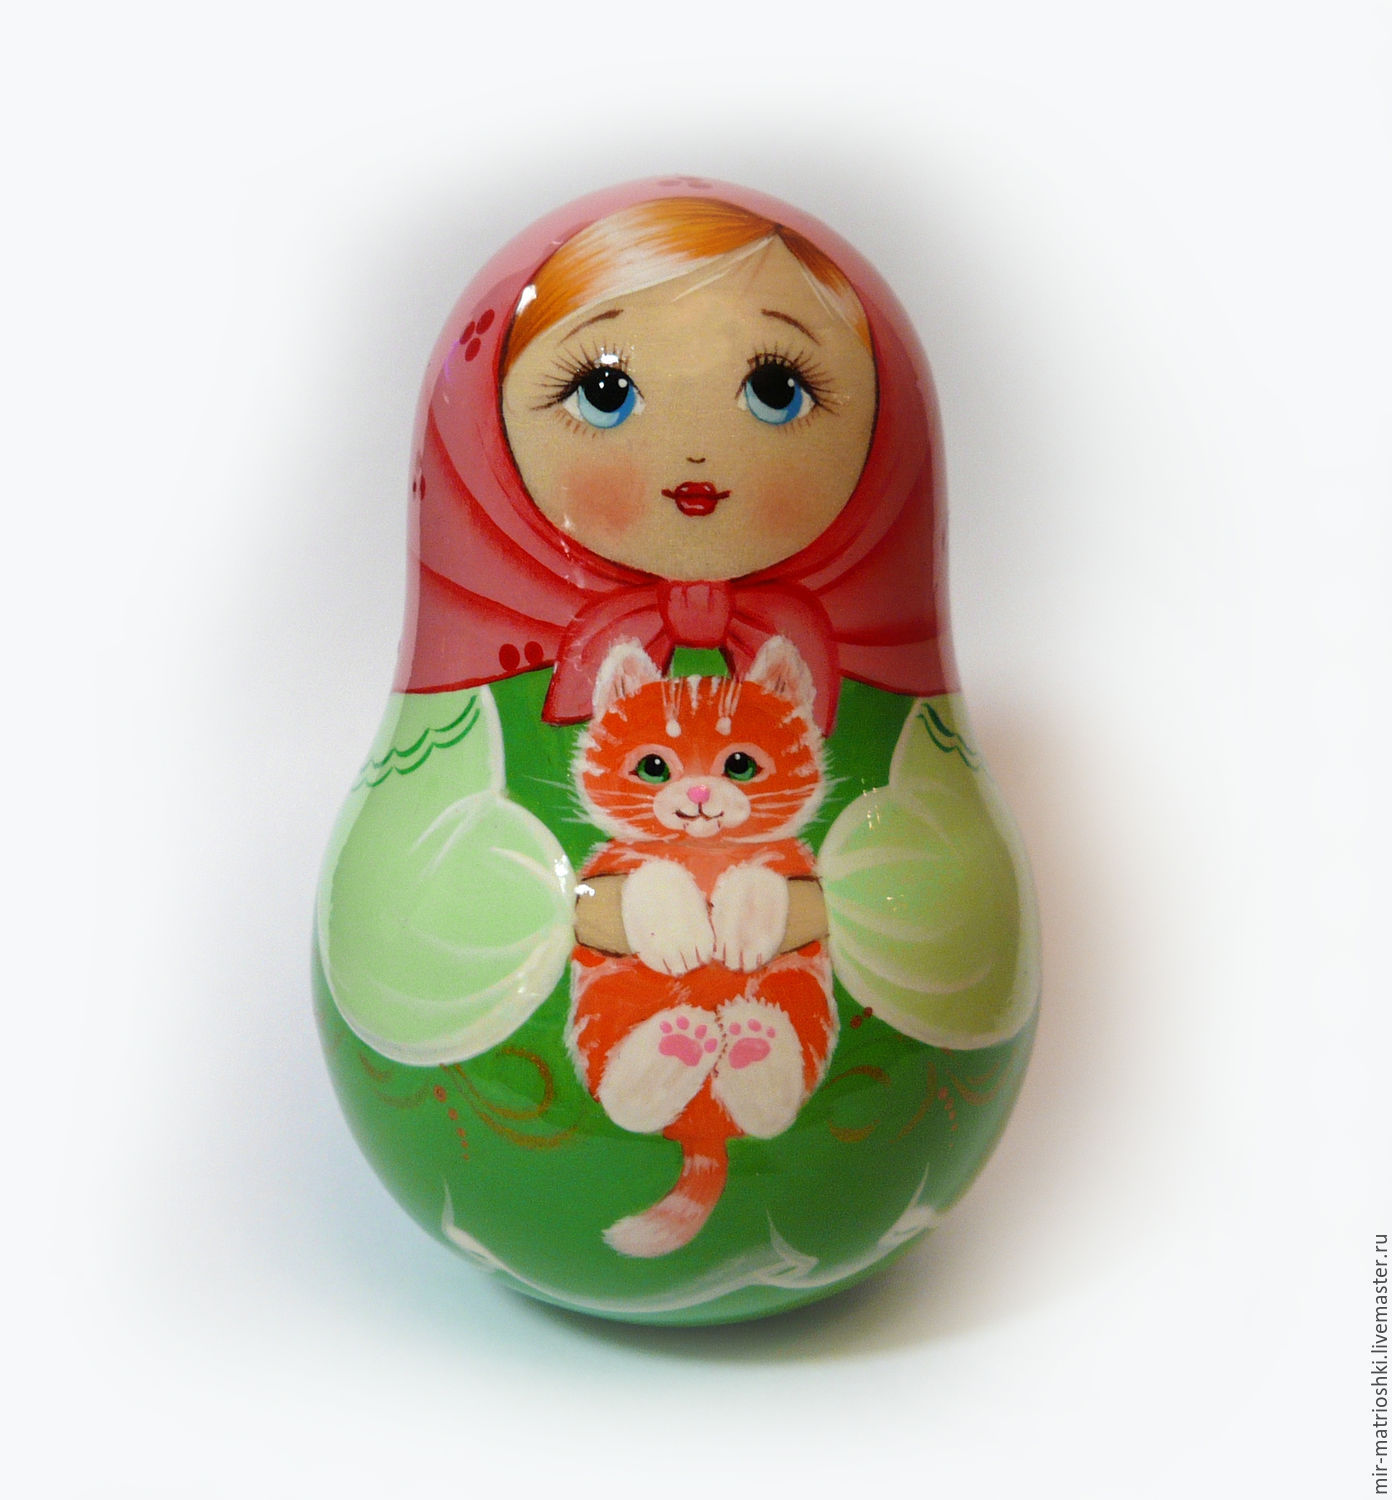 Dolls dolls `Annie Matreshkina` (ringing) will Delight both adult and child. Will bring in all the good and memories of summer. Tumbler matryoshka is a symbol of Russia delivery all around the m